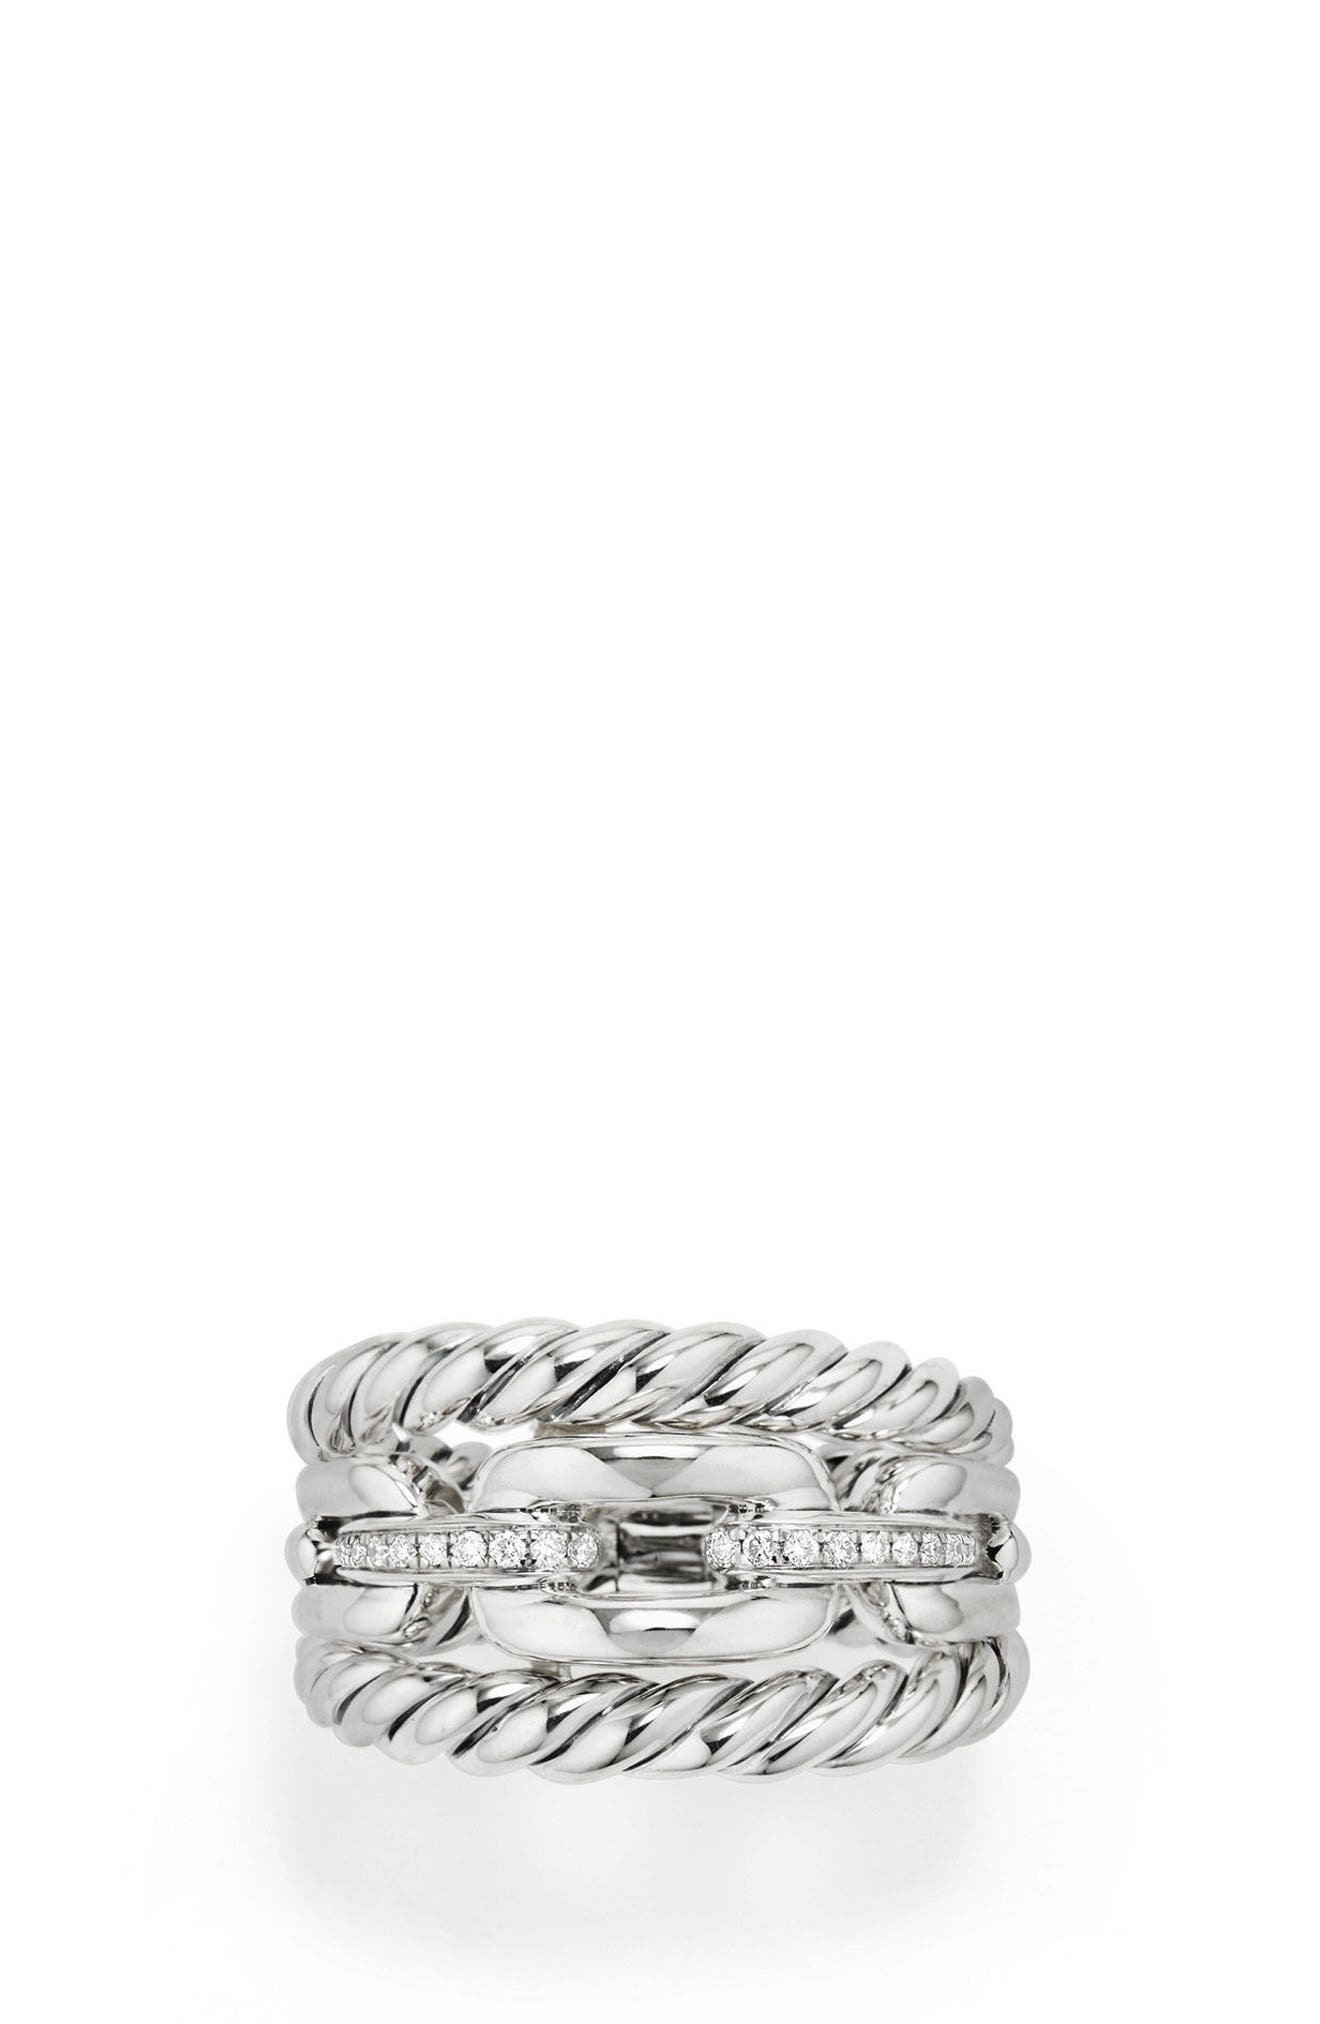 Wellesley Three-Row Ring with Diamonds,                             Alternate thumbnail 3, color,                             Silver